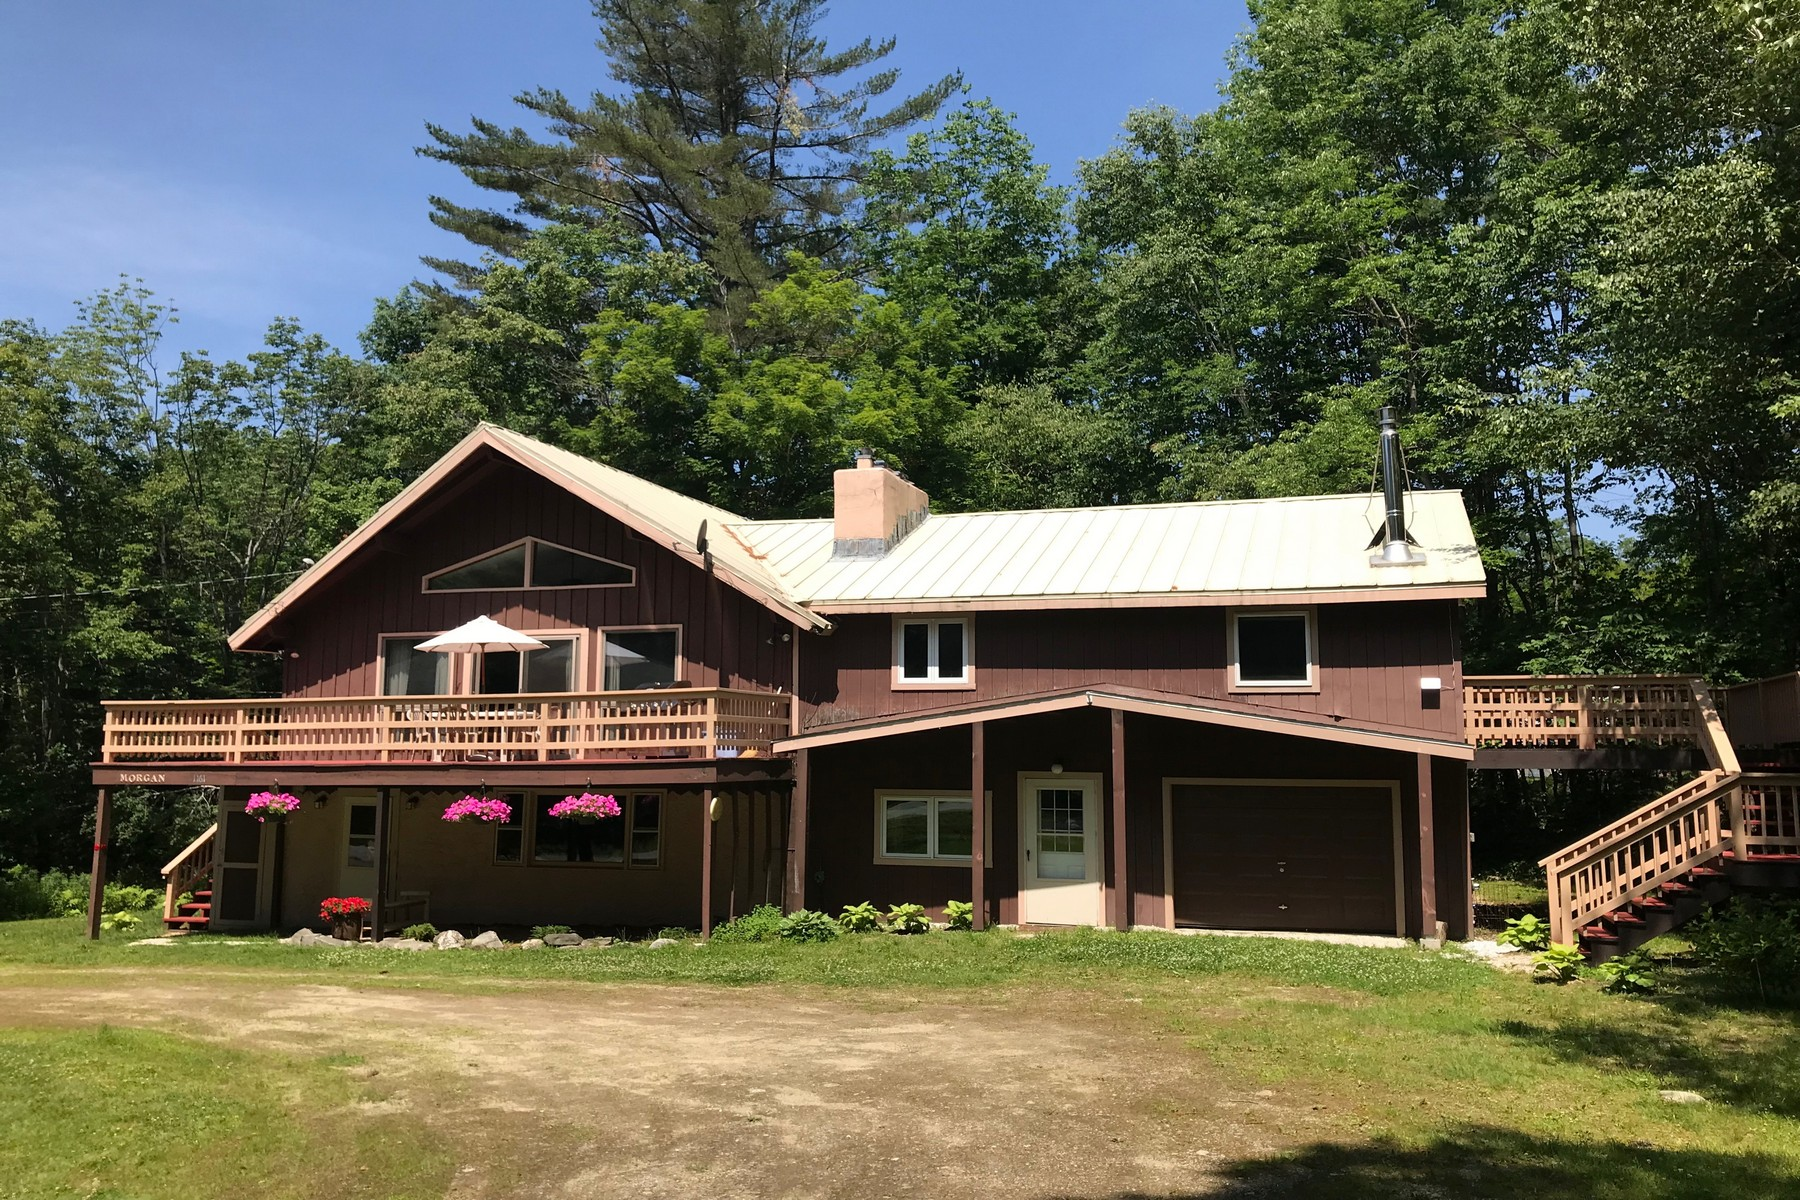 Single Family Homes for Sale at 1161 Little Pond Road 1121/1161, Londonderry 1161 Little Pond Rd 1121/1161 Londonderry, Vermont 05148 United States